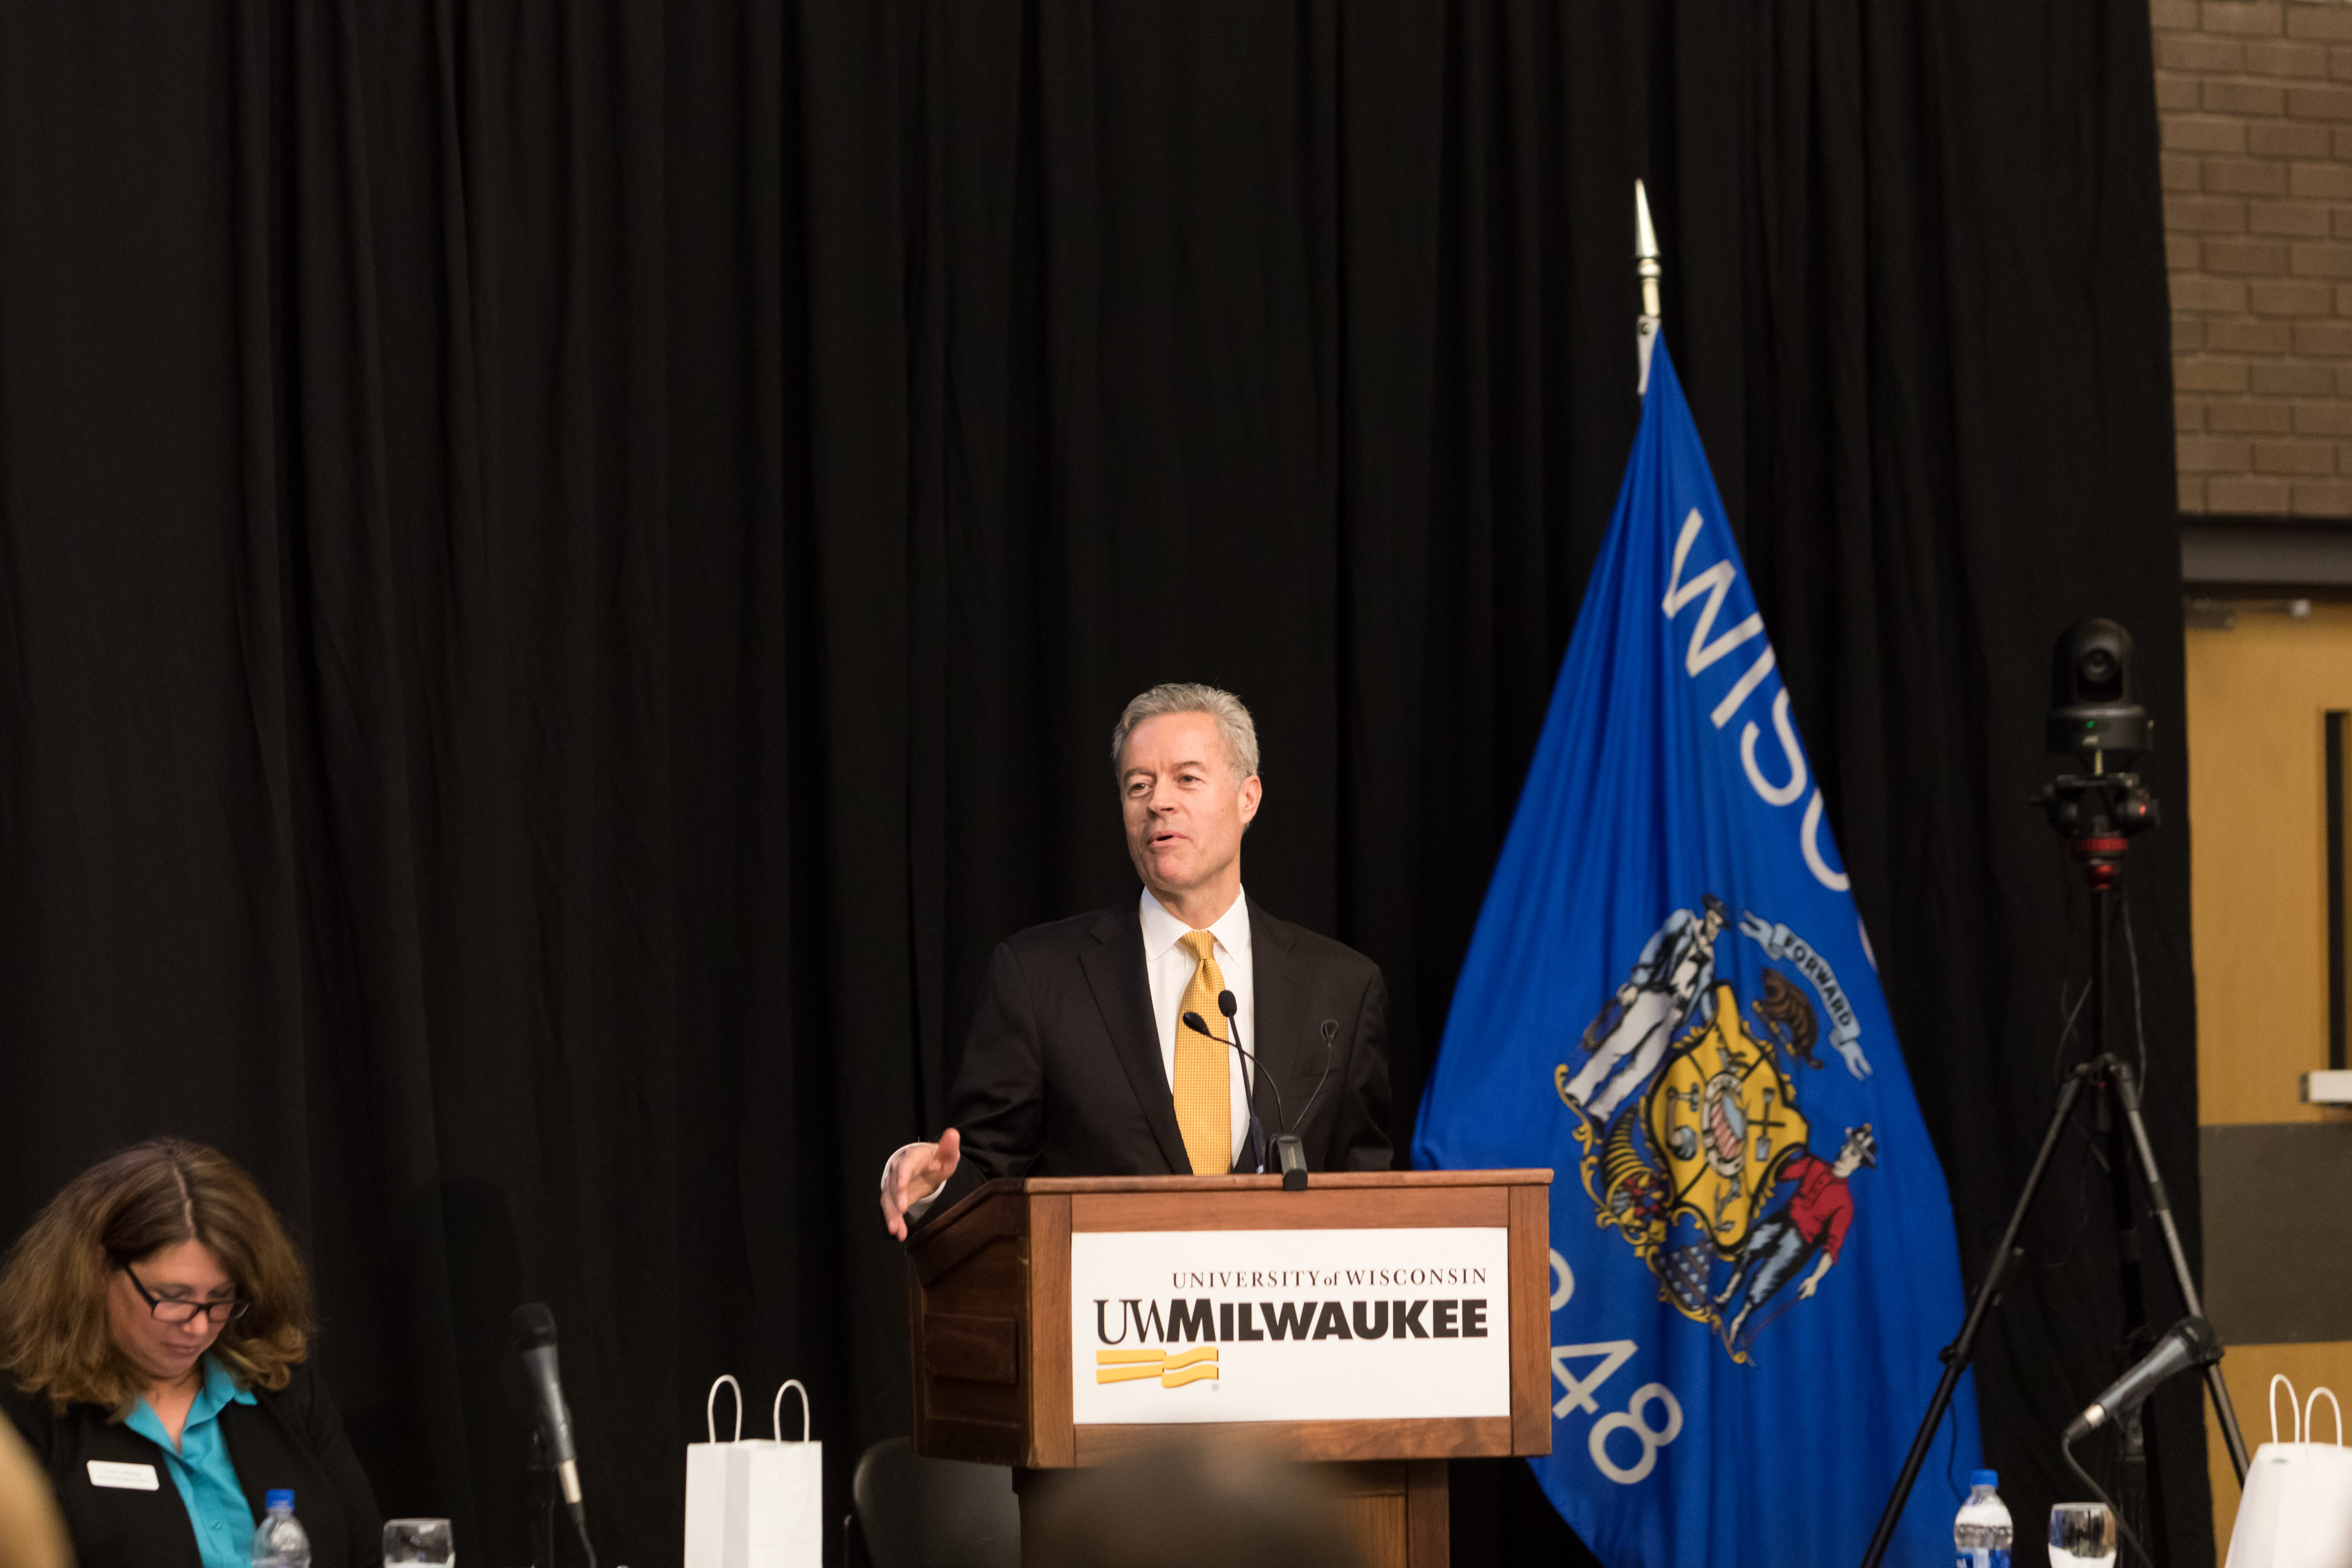 Photo of Chancellor Mark Mone speaking at the Board of Regents meeting hosted by UW-Milwaukee on June 6, 2019. (Photo by Mikaila Dusenberry/UW-Milwaukee)